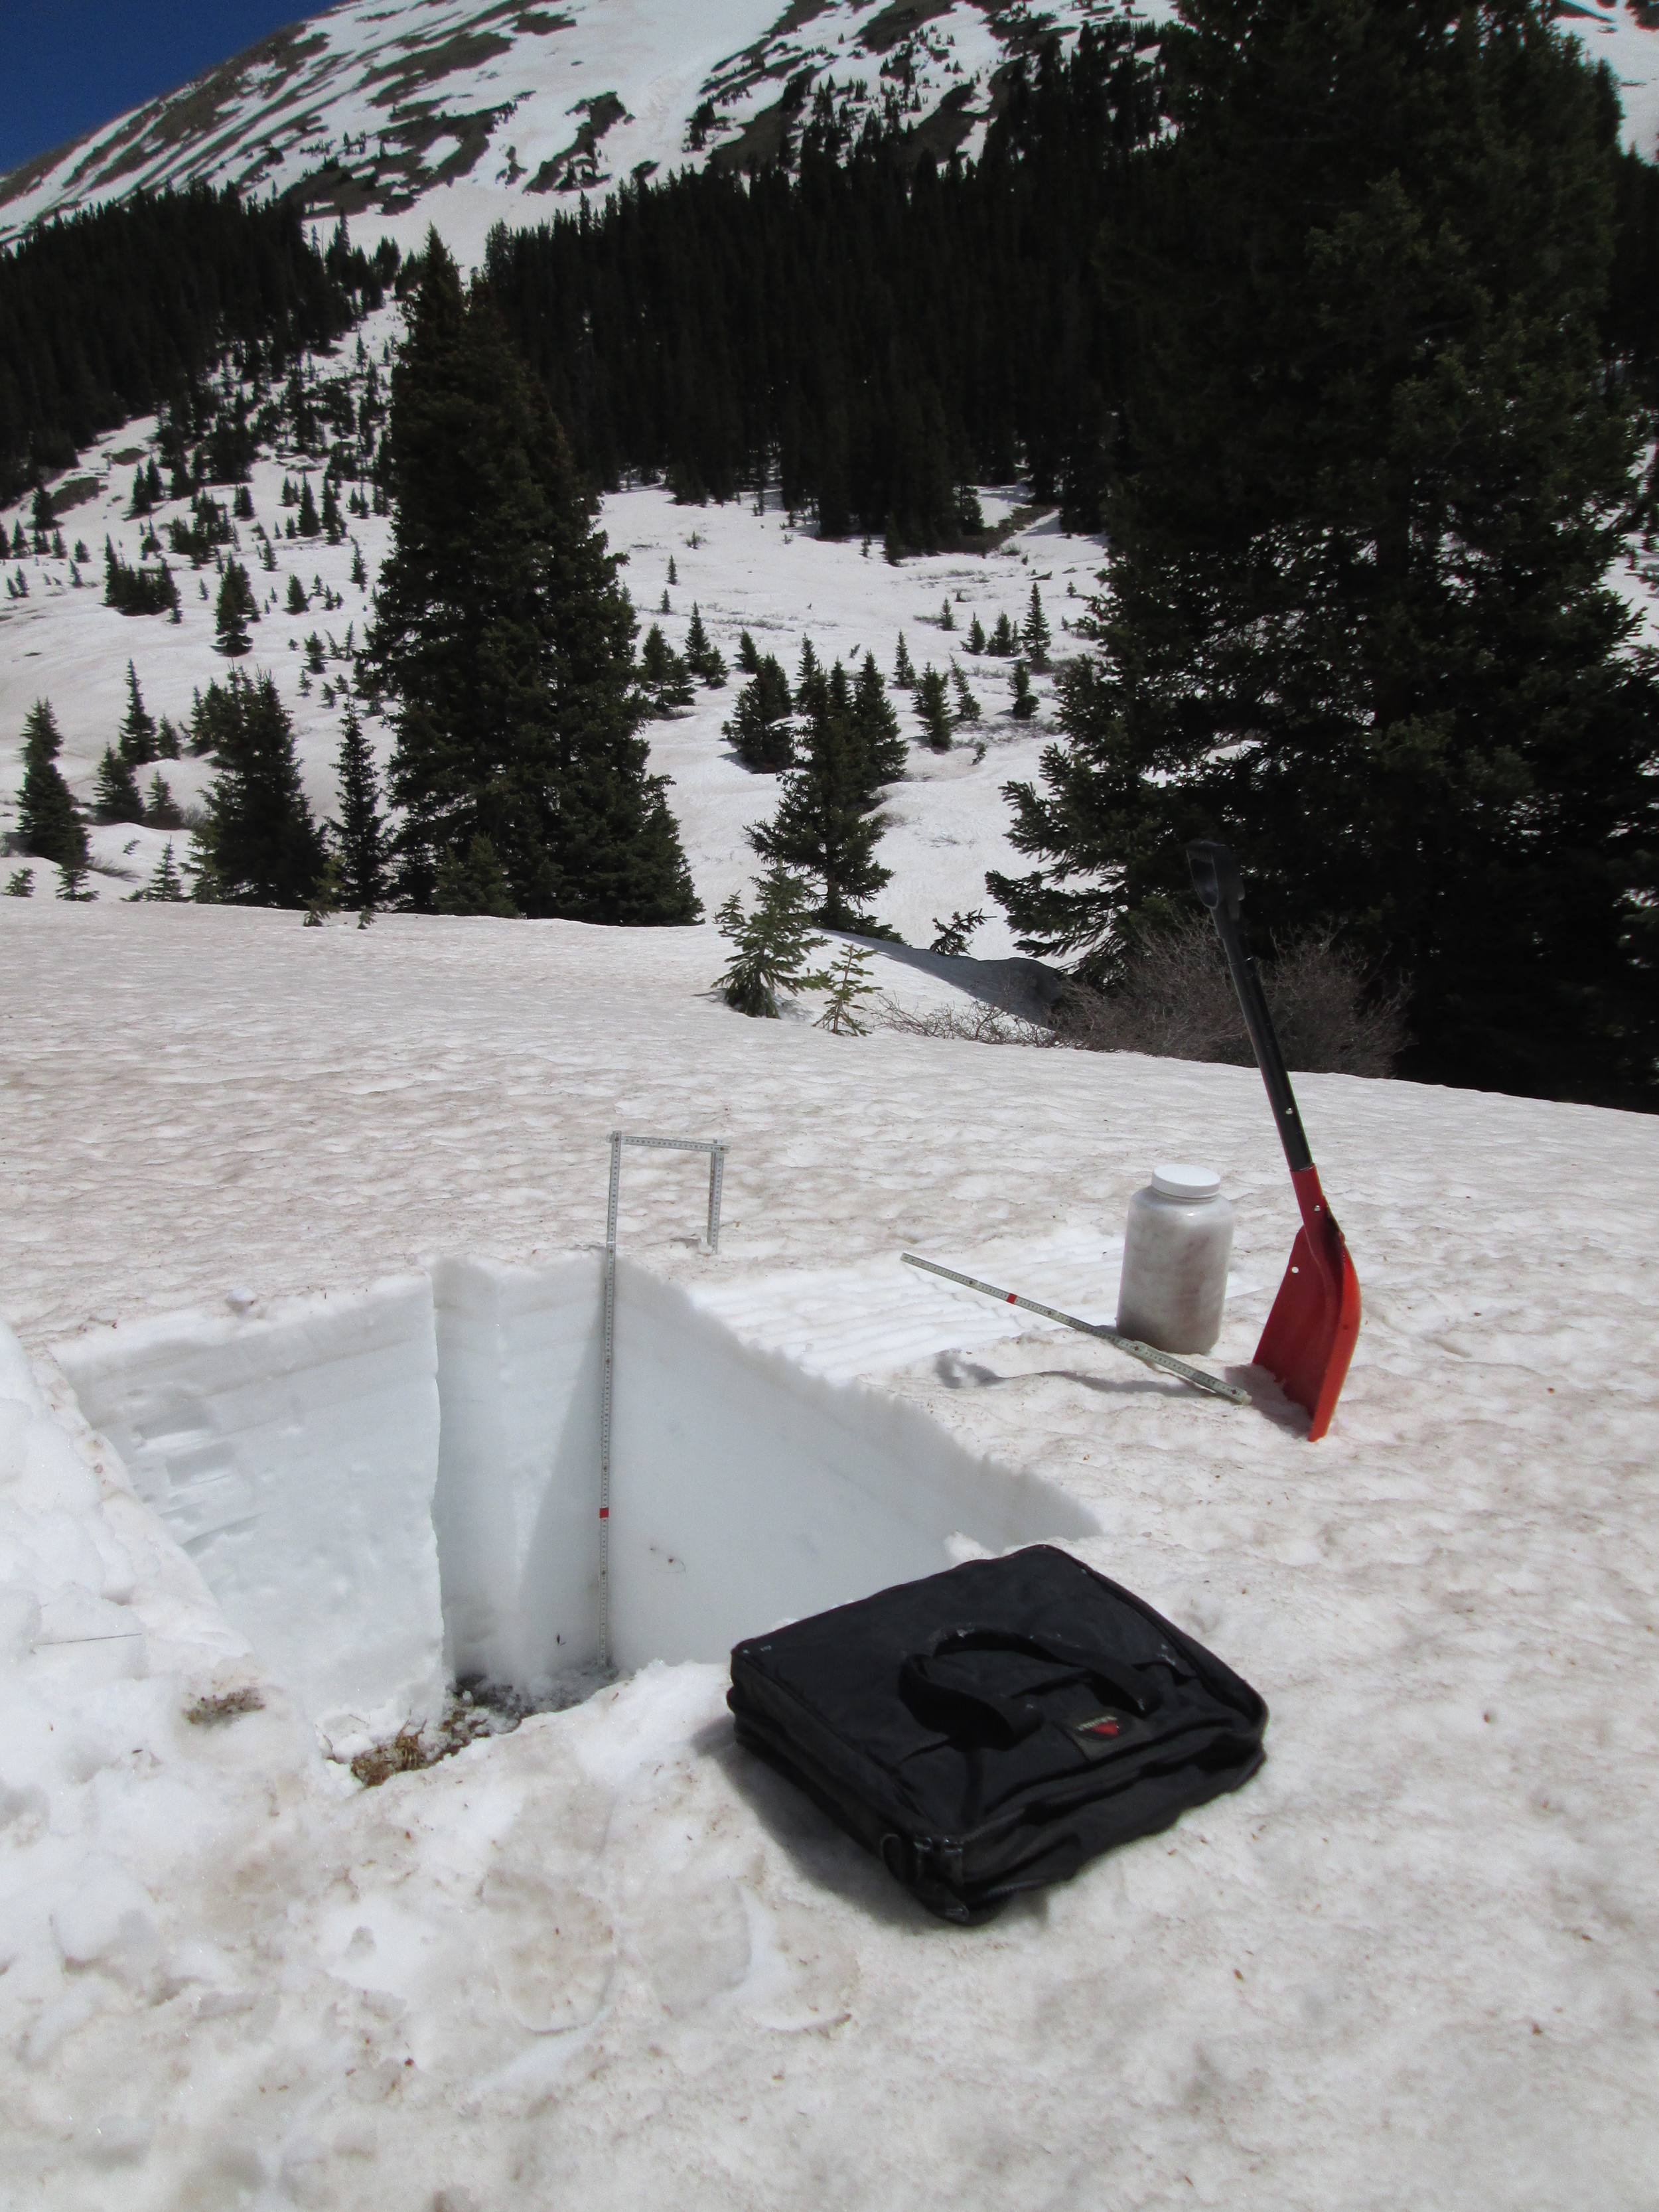 """Some 32"""" of """"very wet"""" snow remained at the CODOS snow profile site; the nearby Grizzly Peak Snotel was reporting just 21"""" at the time. Merged dust layers at the snowpack surface were extensively reducing snow albedo in the Loveland Pass locale, with only small remnants of the clean Memorial Day weekend snowfall remaining. An 'all layers merged' sample was collected."""